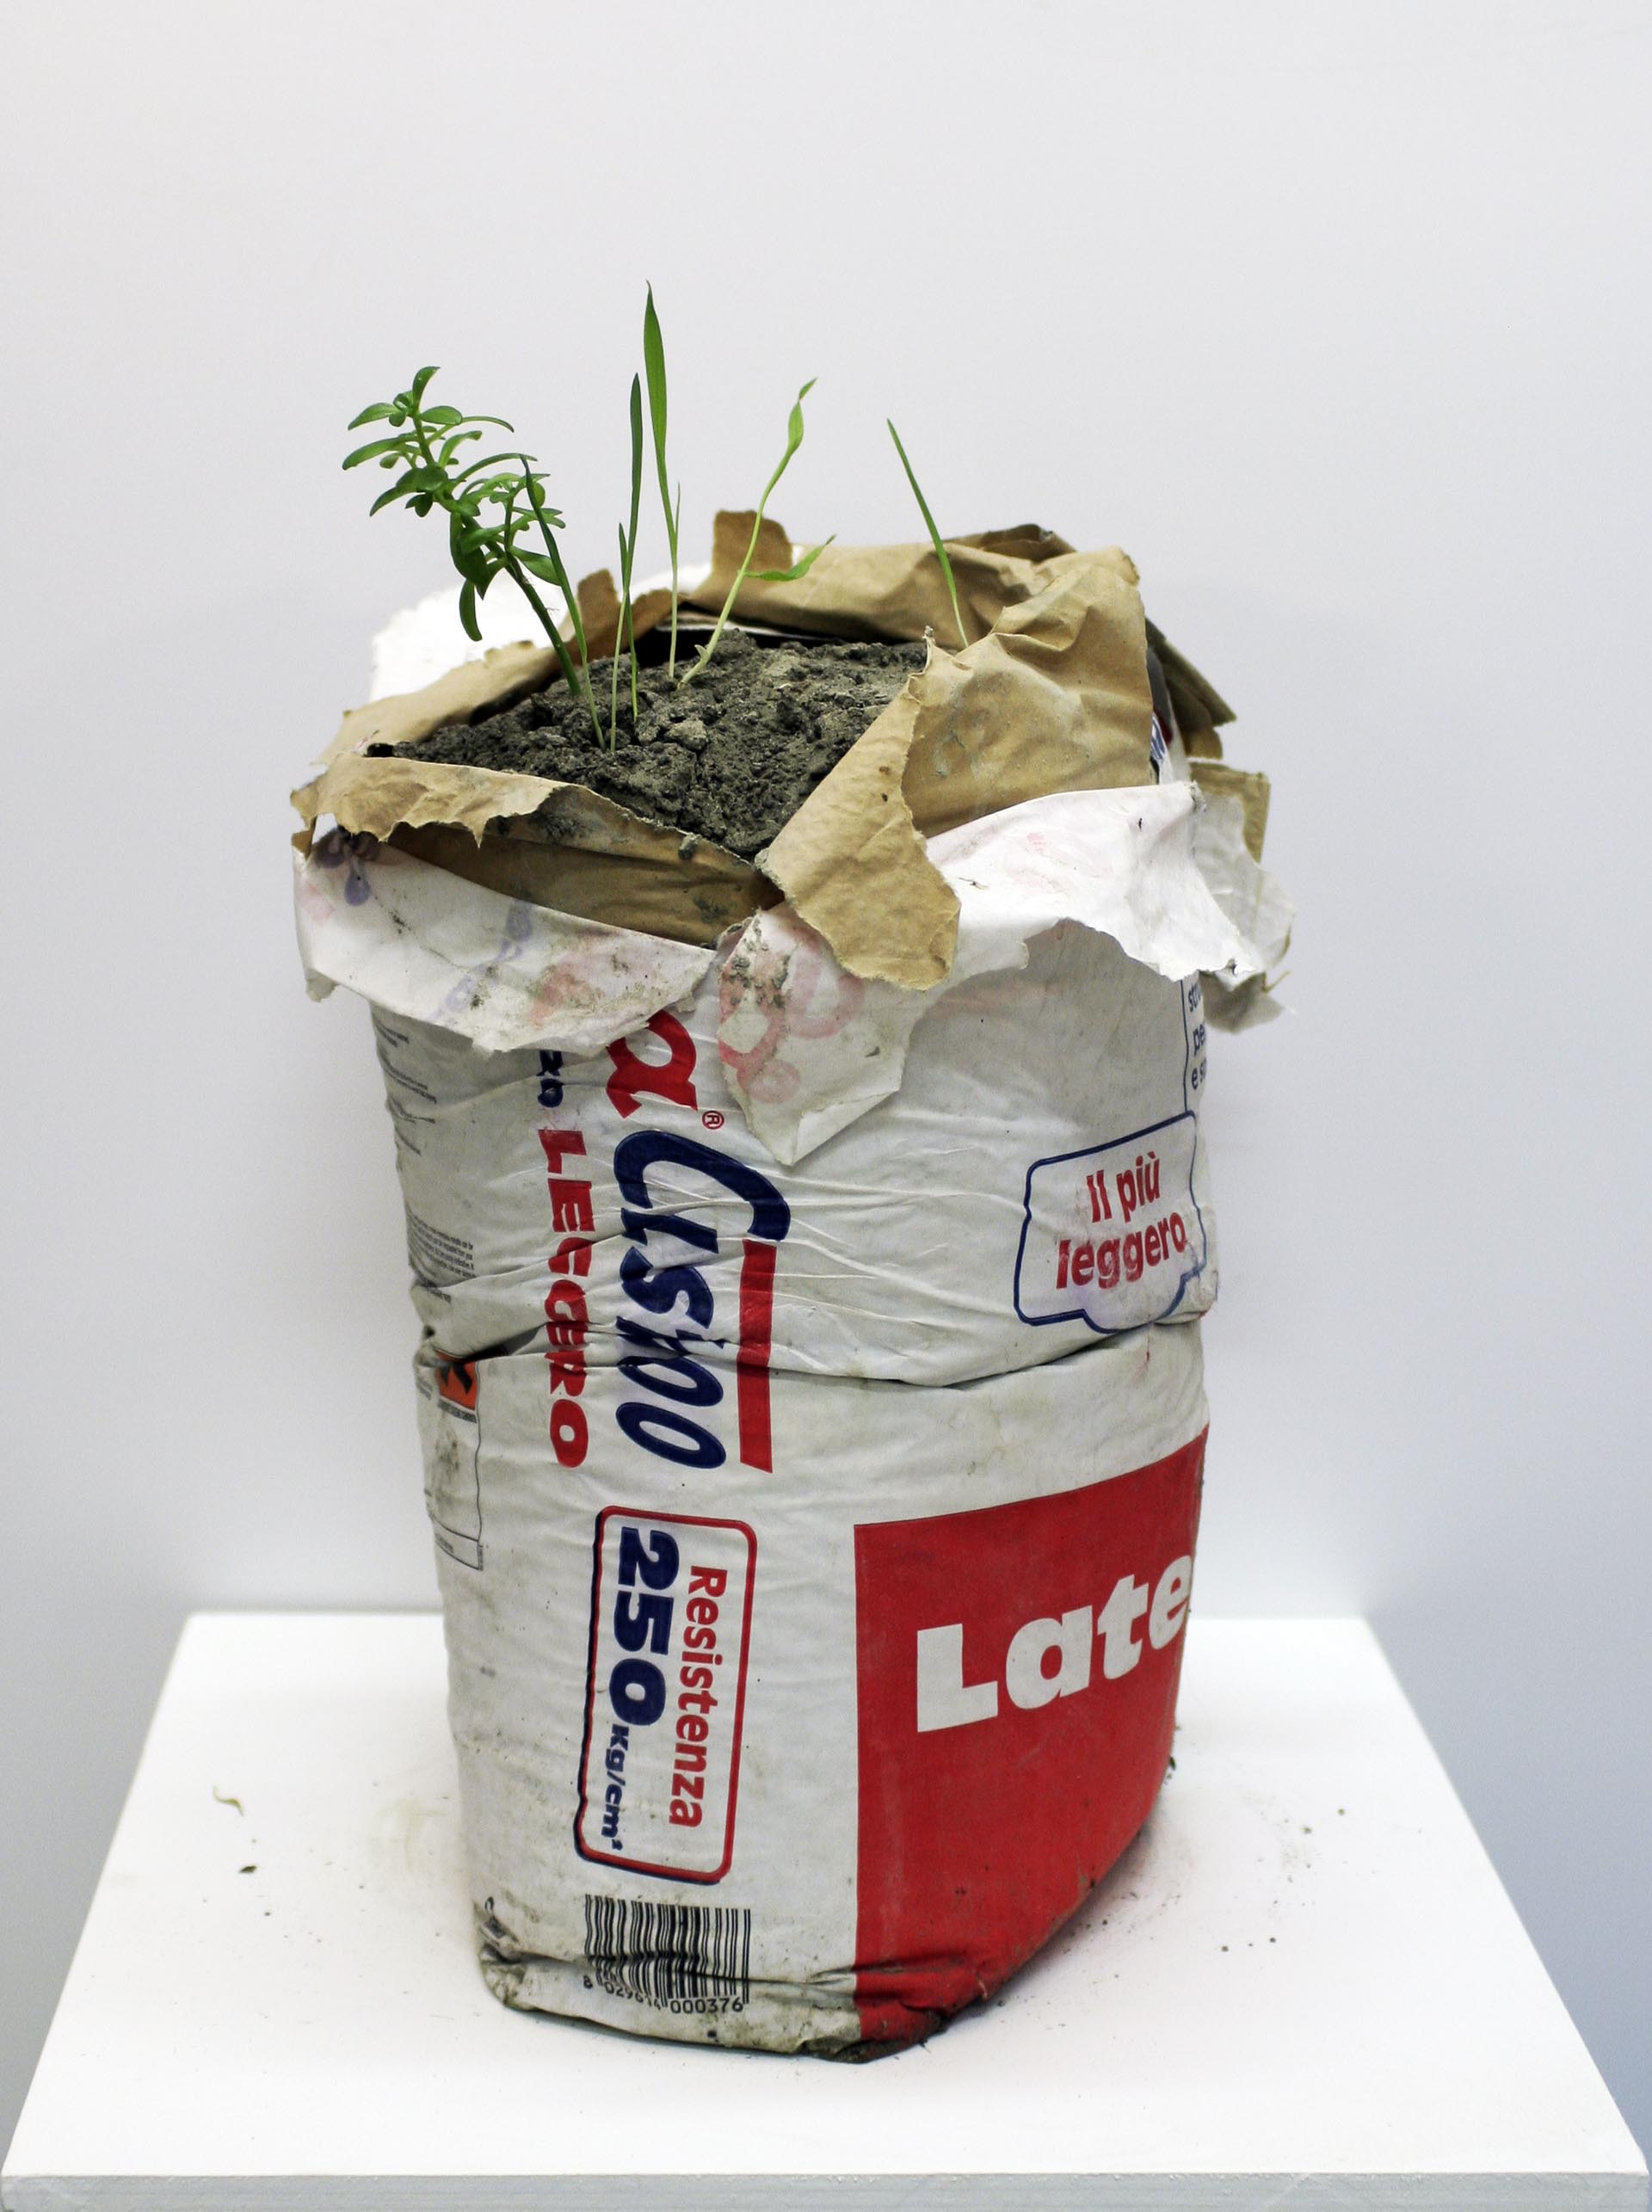 Performance of a plant - 2013, concrete bag and spontaneous plant